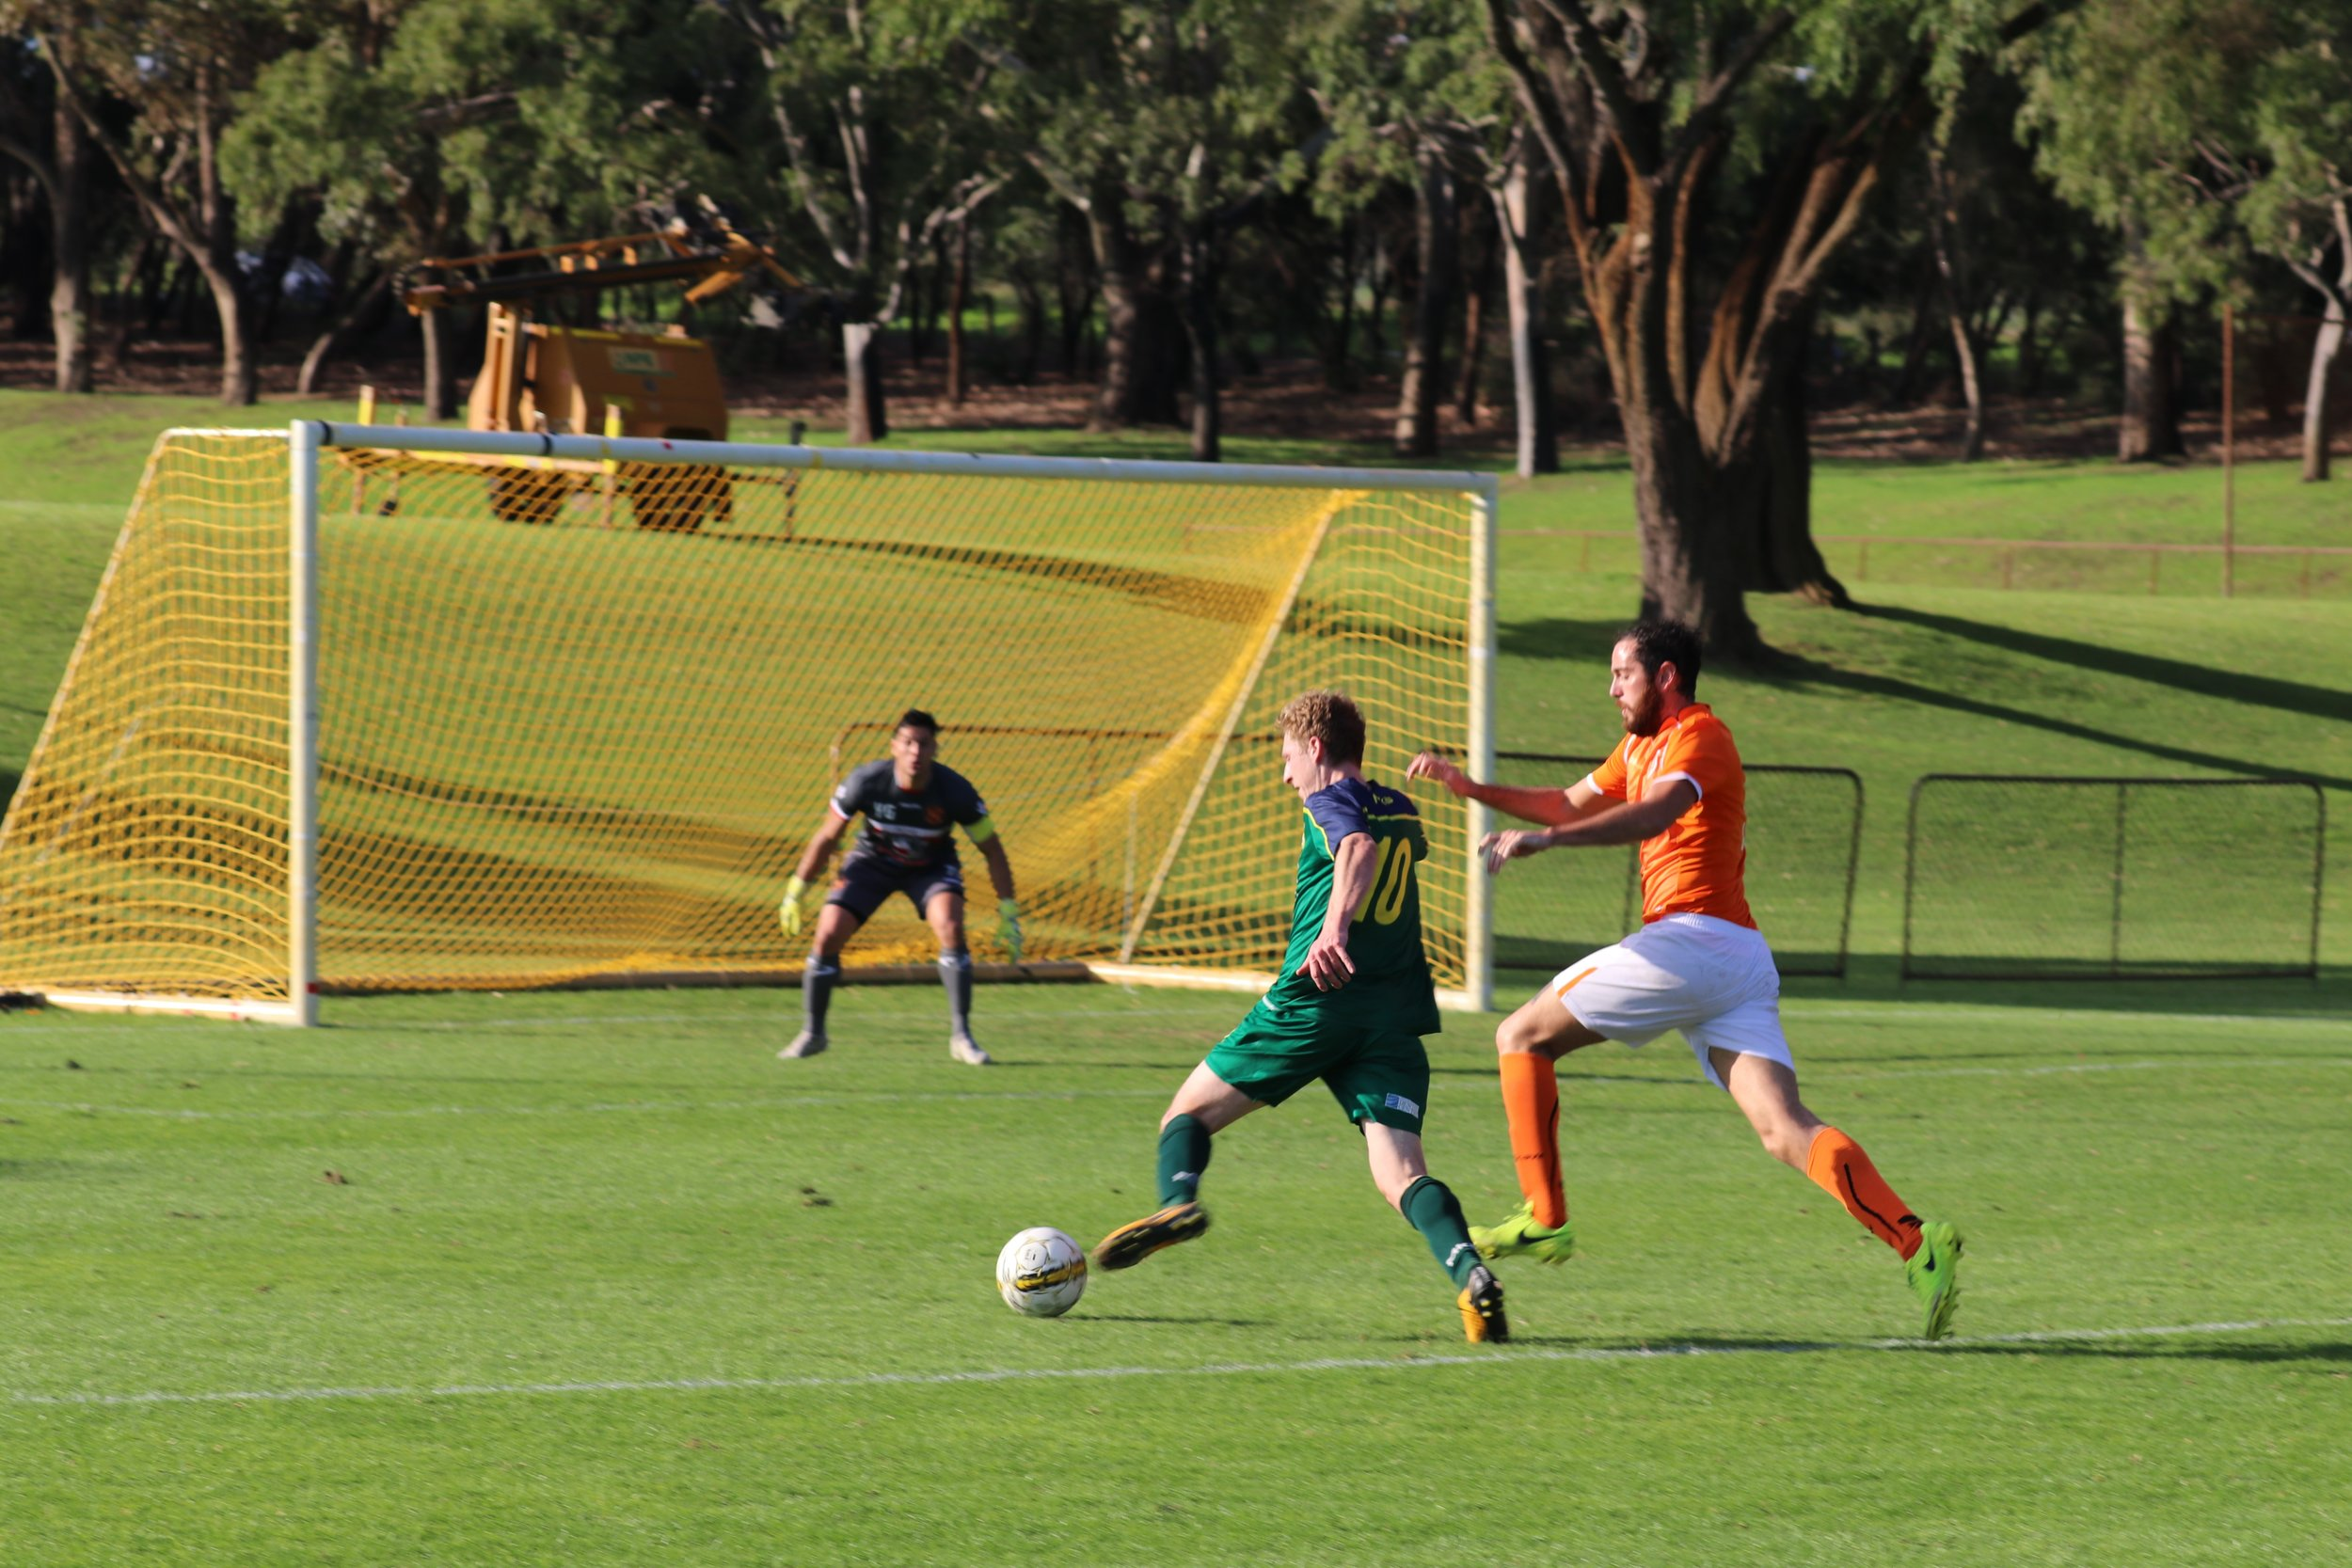 KRETOWICZ ONCE AGAIN HIT THE SCORESHEET WITH A LATE EQUALISER - CREDIT: GABRIELE MALUGA